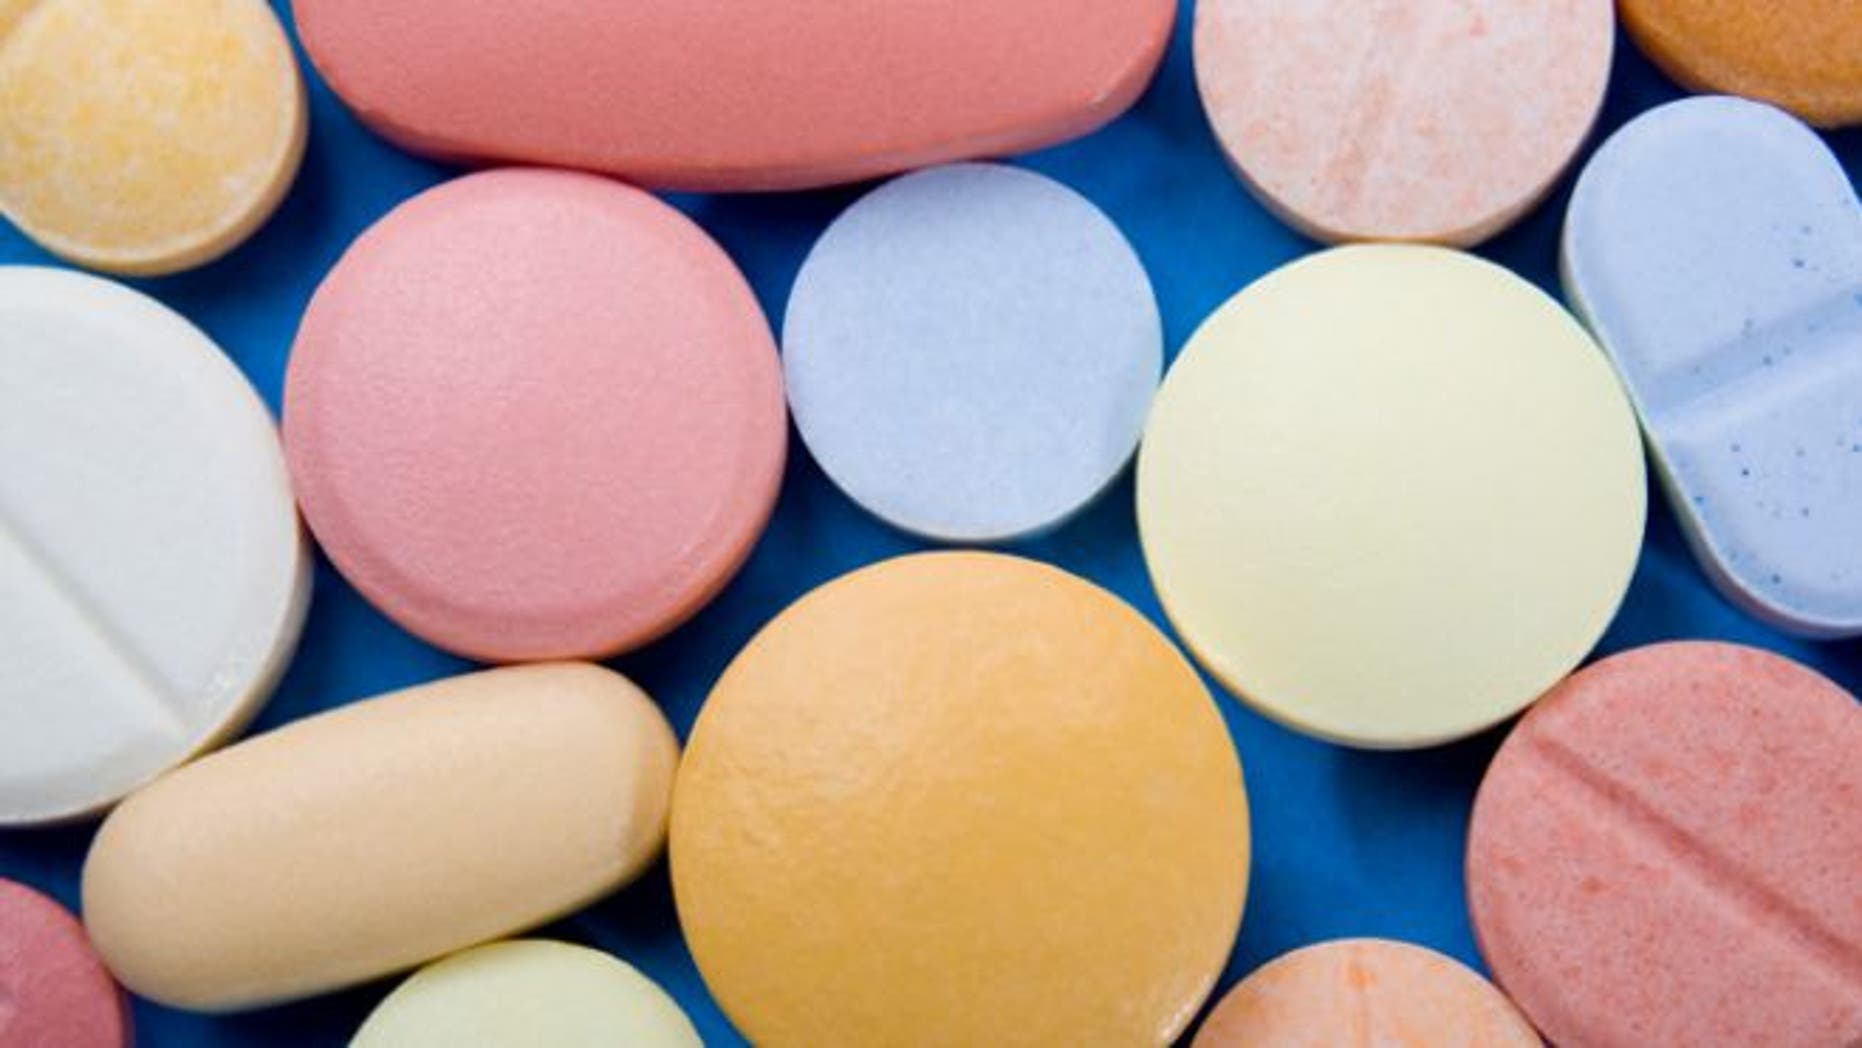 Drugs Taken By Those With Asd Come With >> Kids With Autism Often Get Multiple Meds At Once Fox News